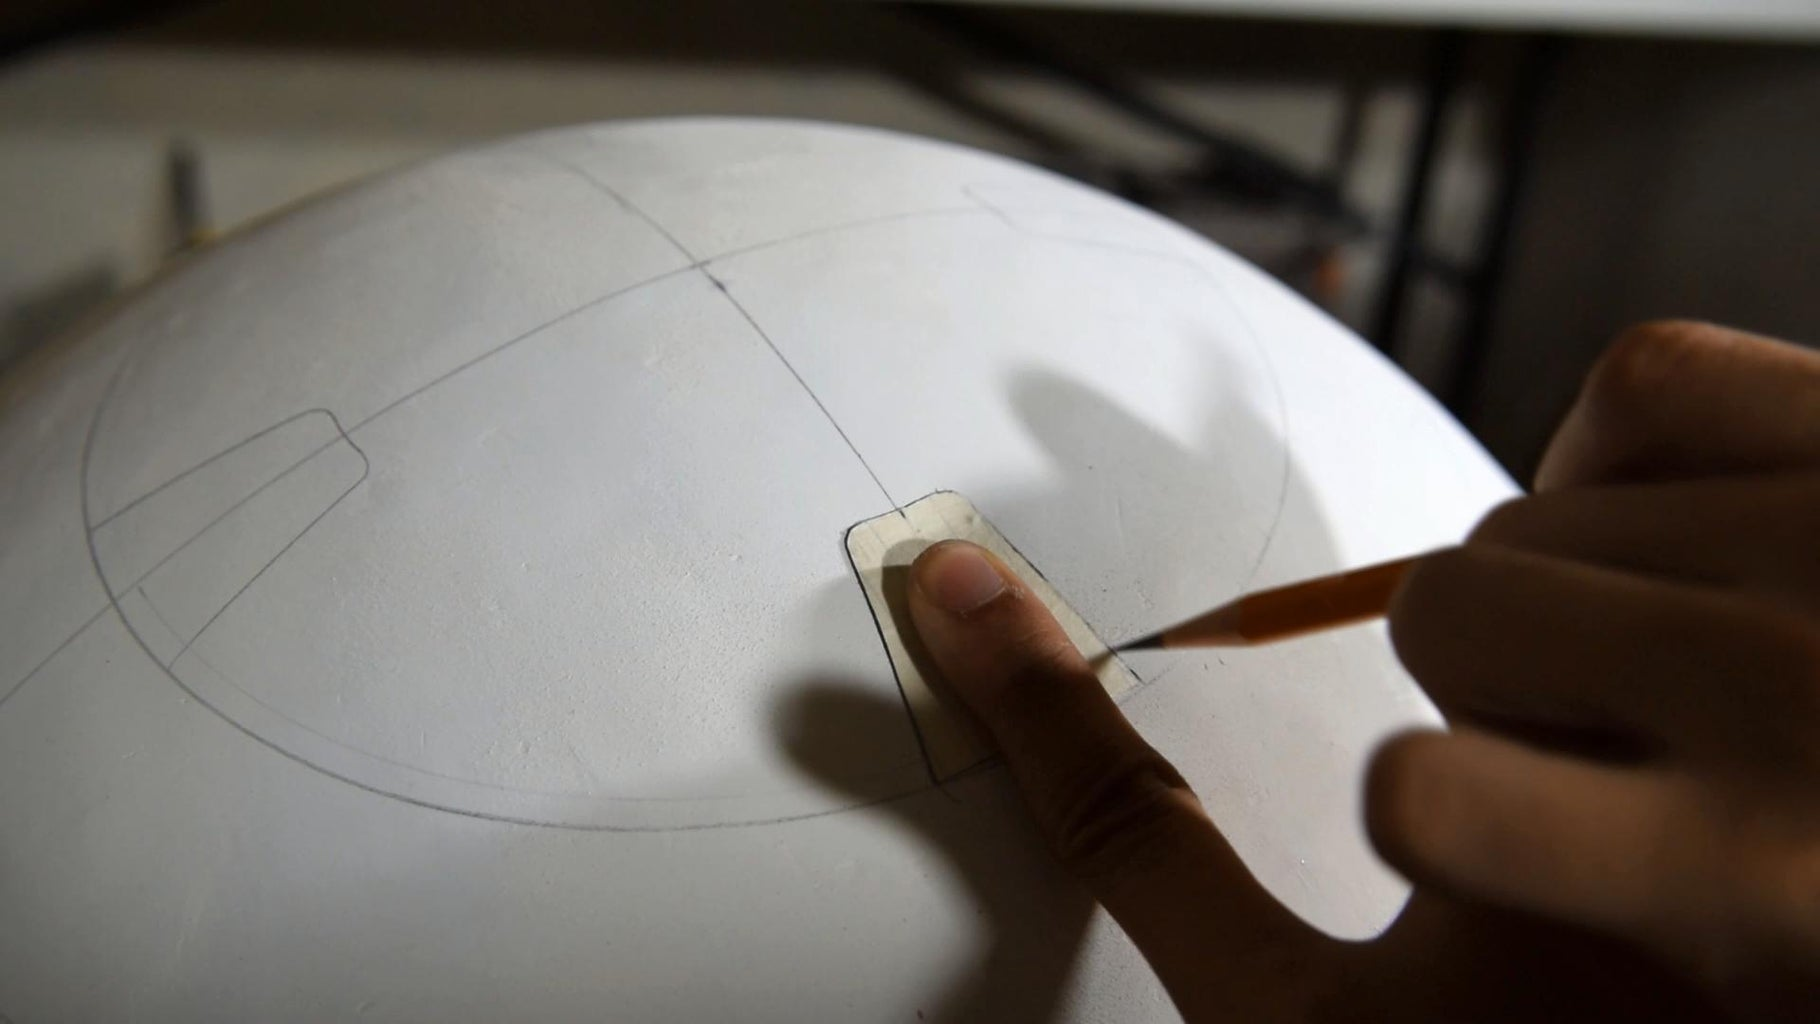 Draw Details and Outlines on BB8's Body